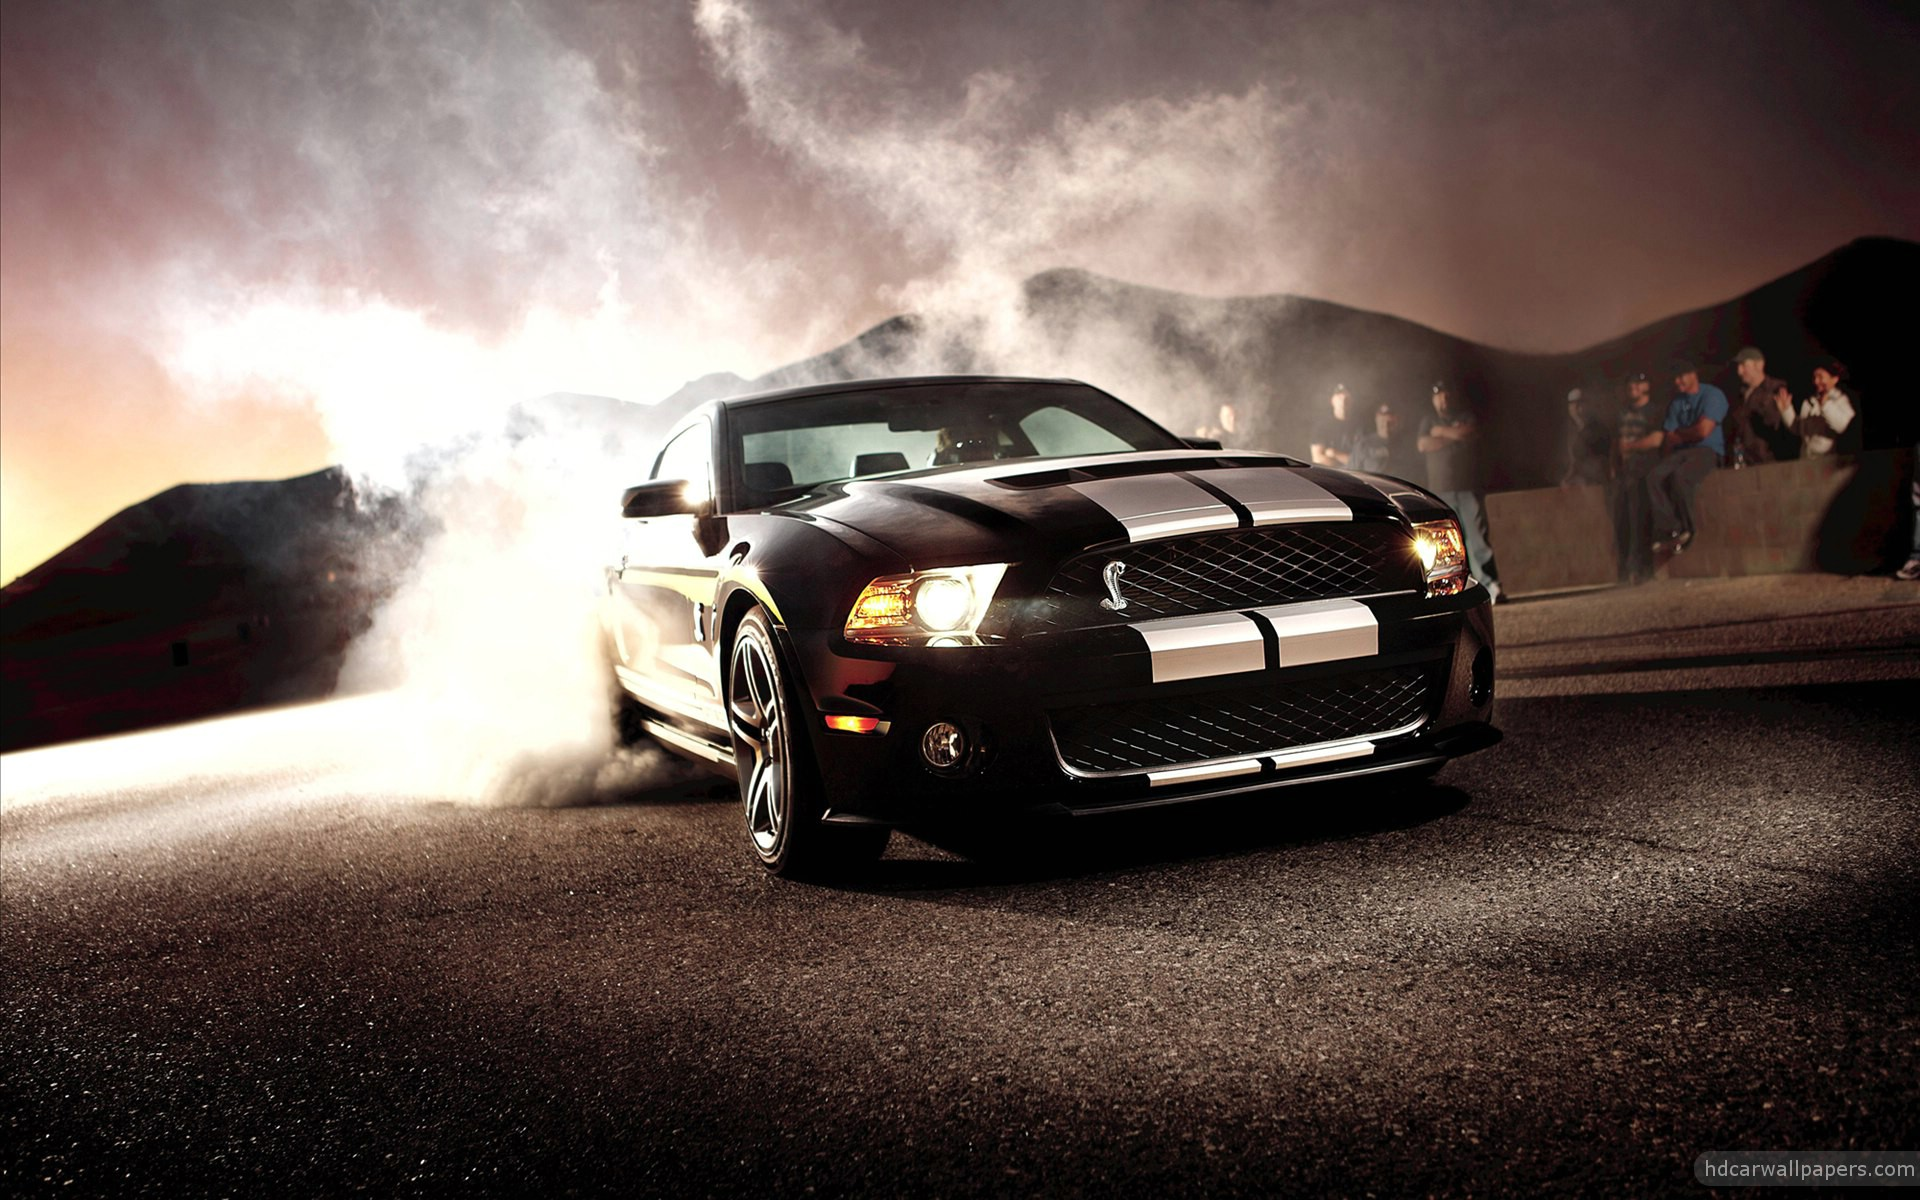 Ford Shelby GT500 2012 Wallpaper HD Car Wallpapers 1920x1200